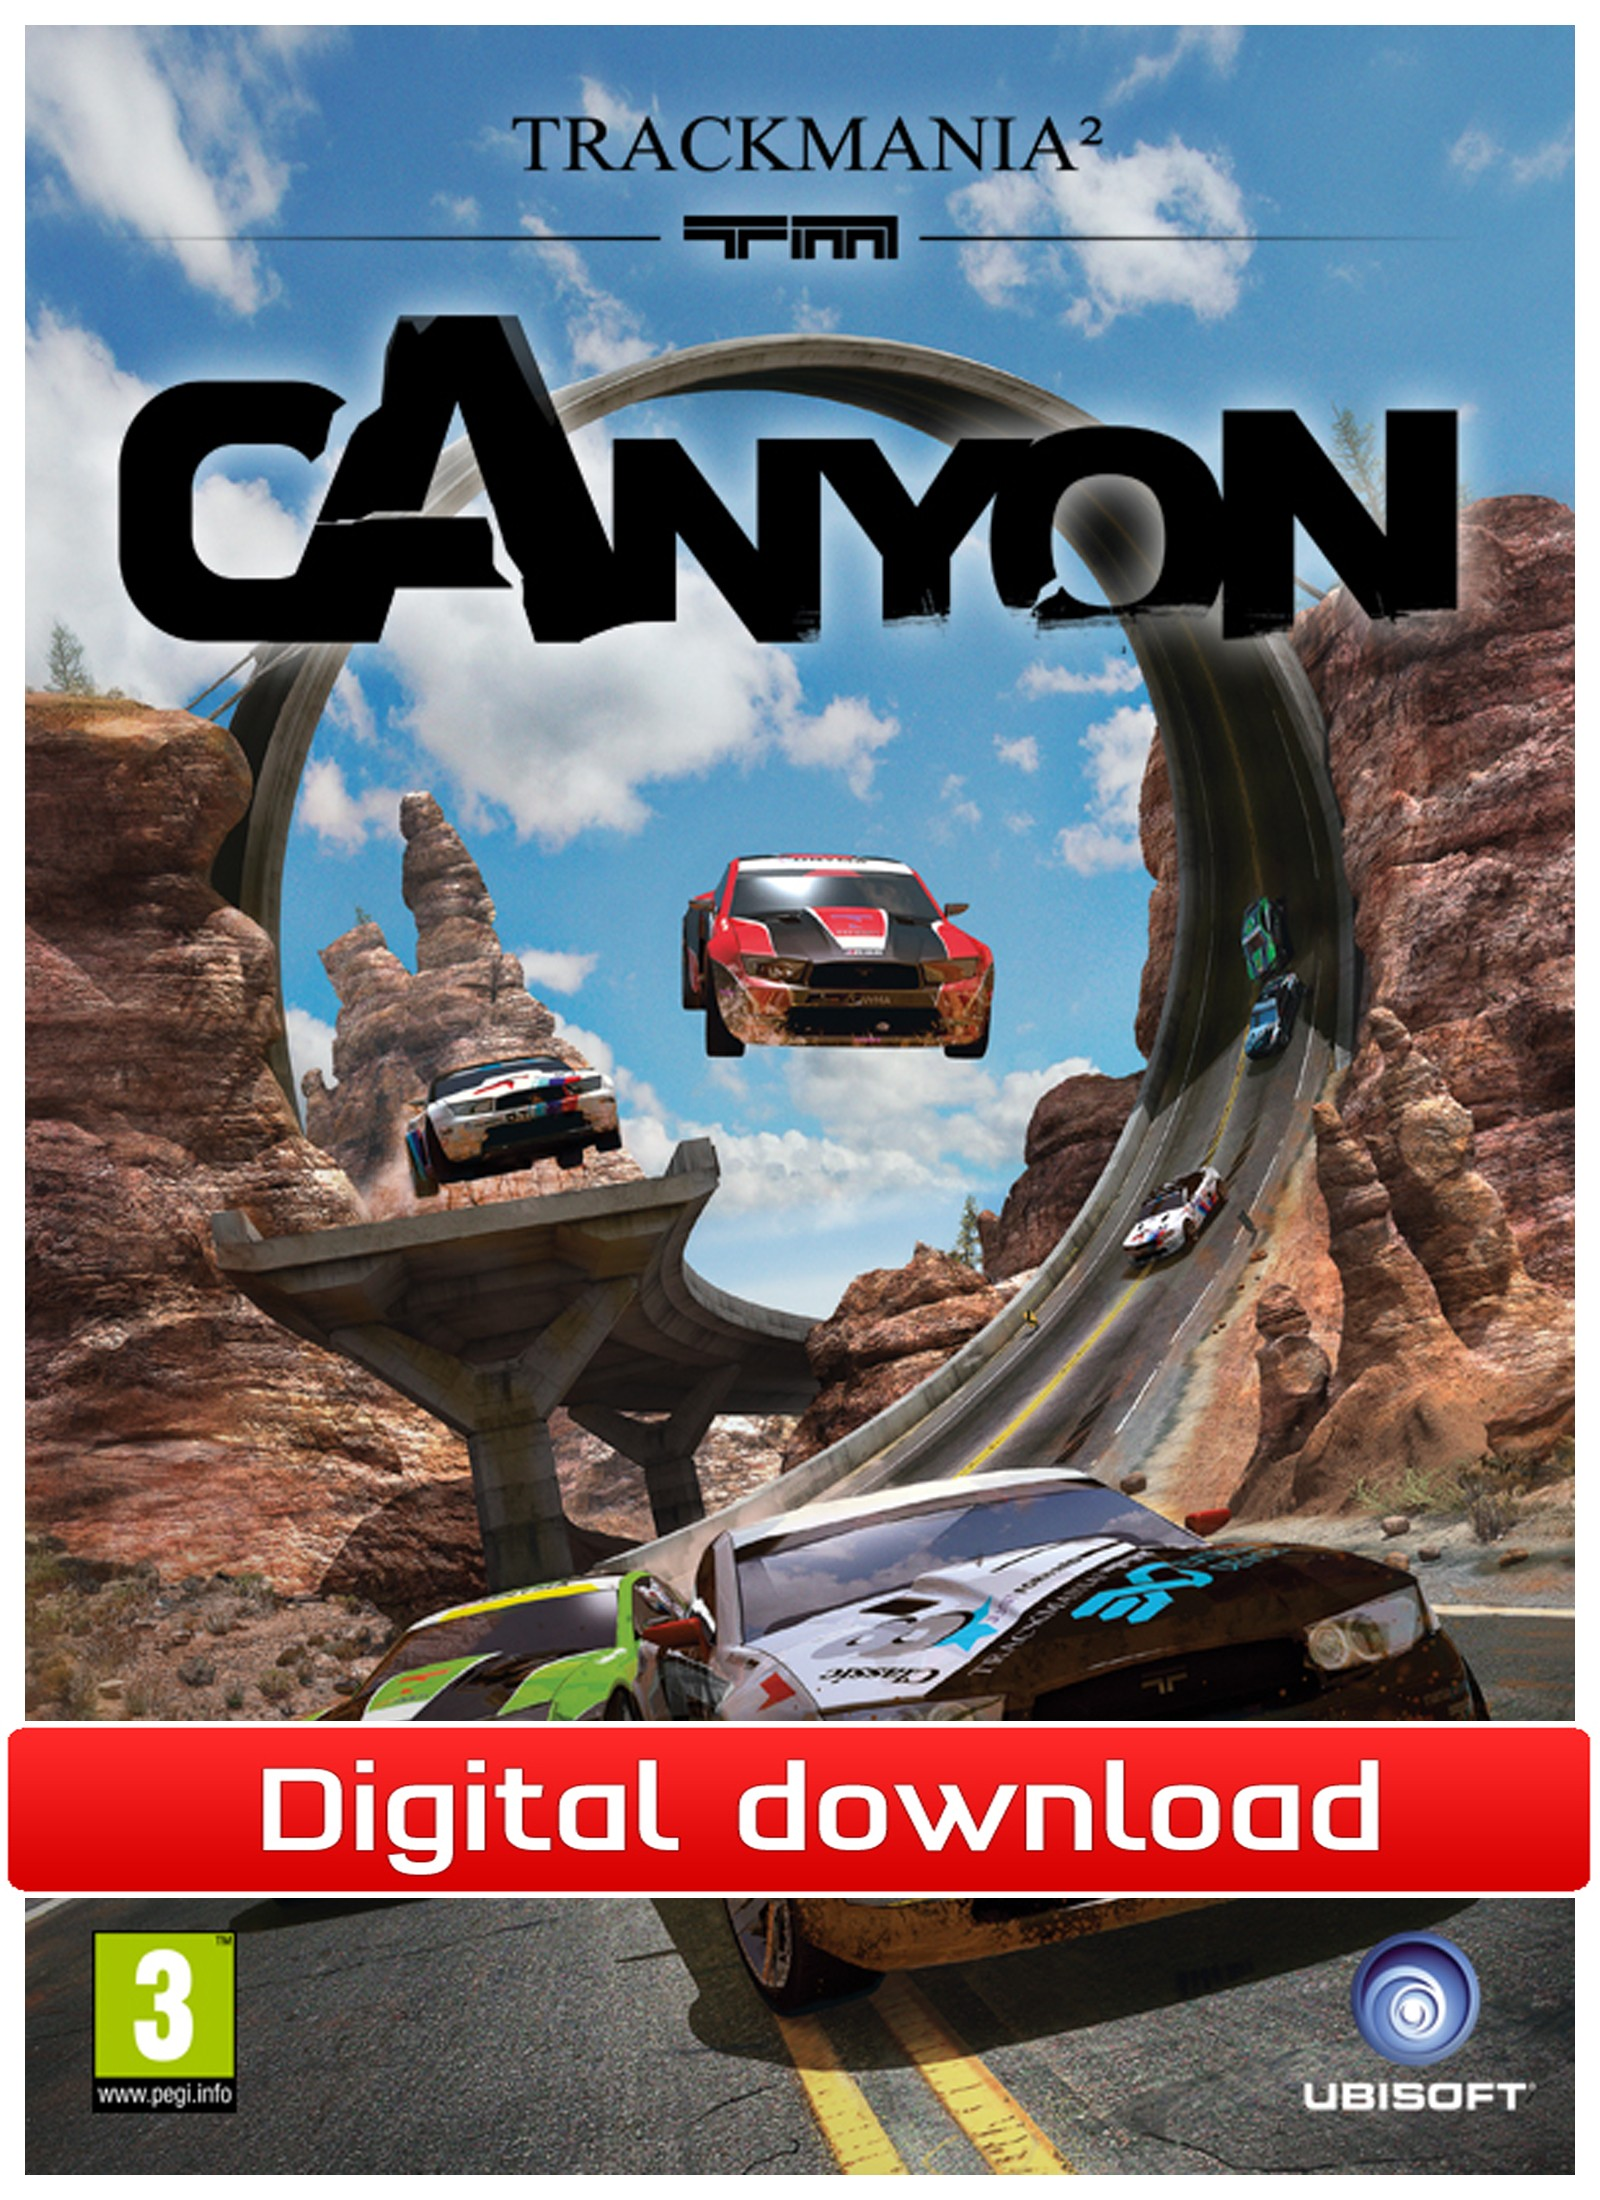 32769 : TrackMania² Canyon (PC nedlastning)